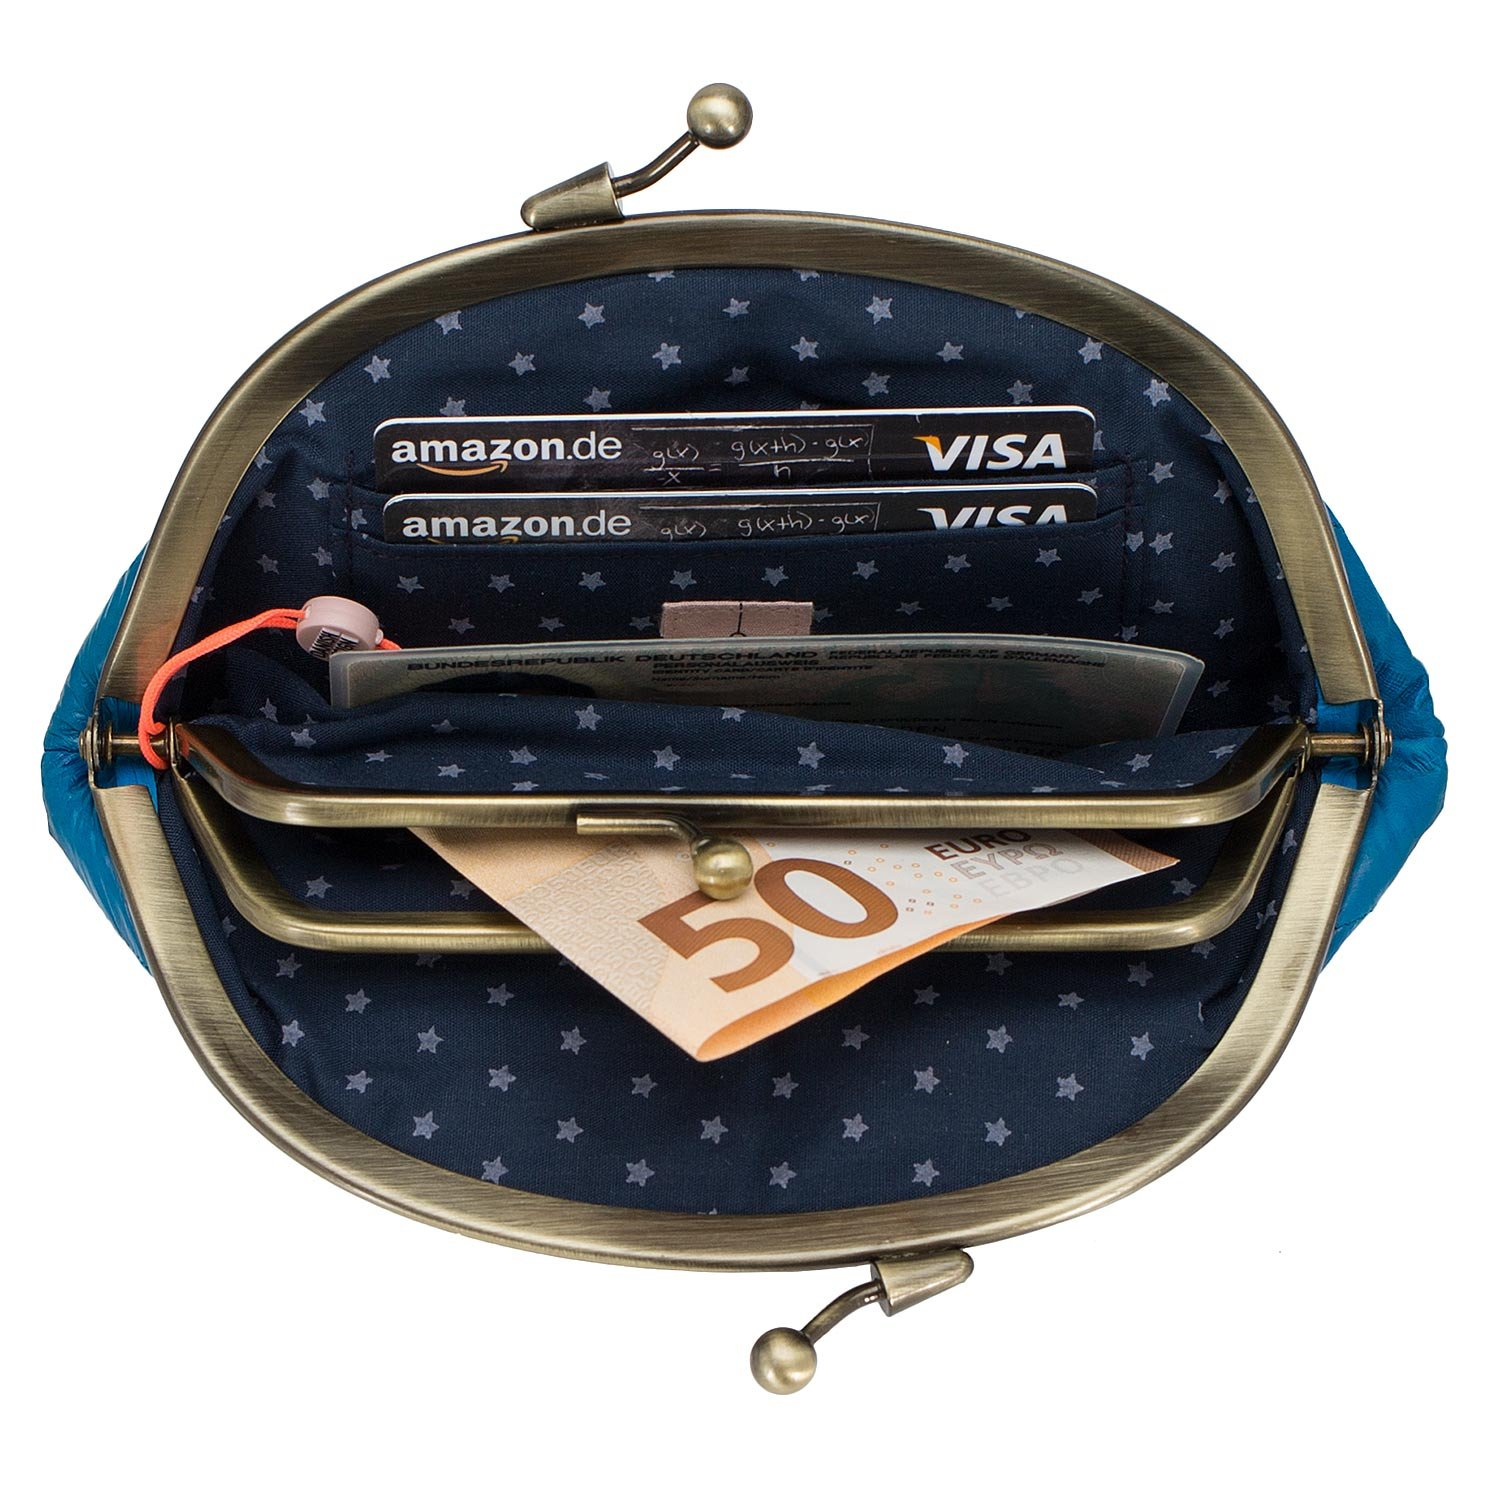 Becksondergaard Purse Tourquoise Leather Wallet Granny for Women made of Eel Skin Notes Coin Card Holder Purse 100001-512